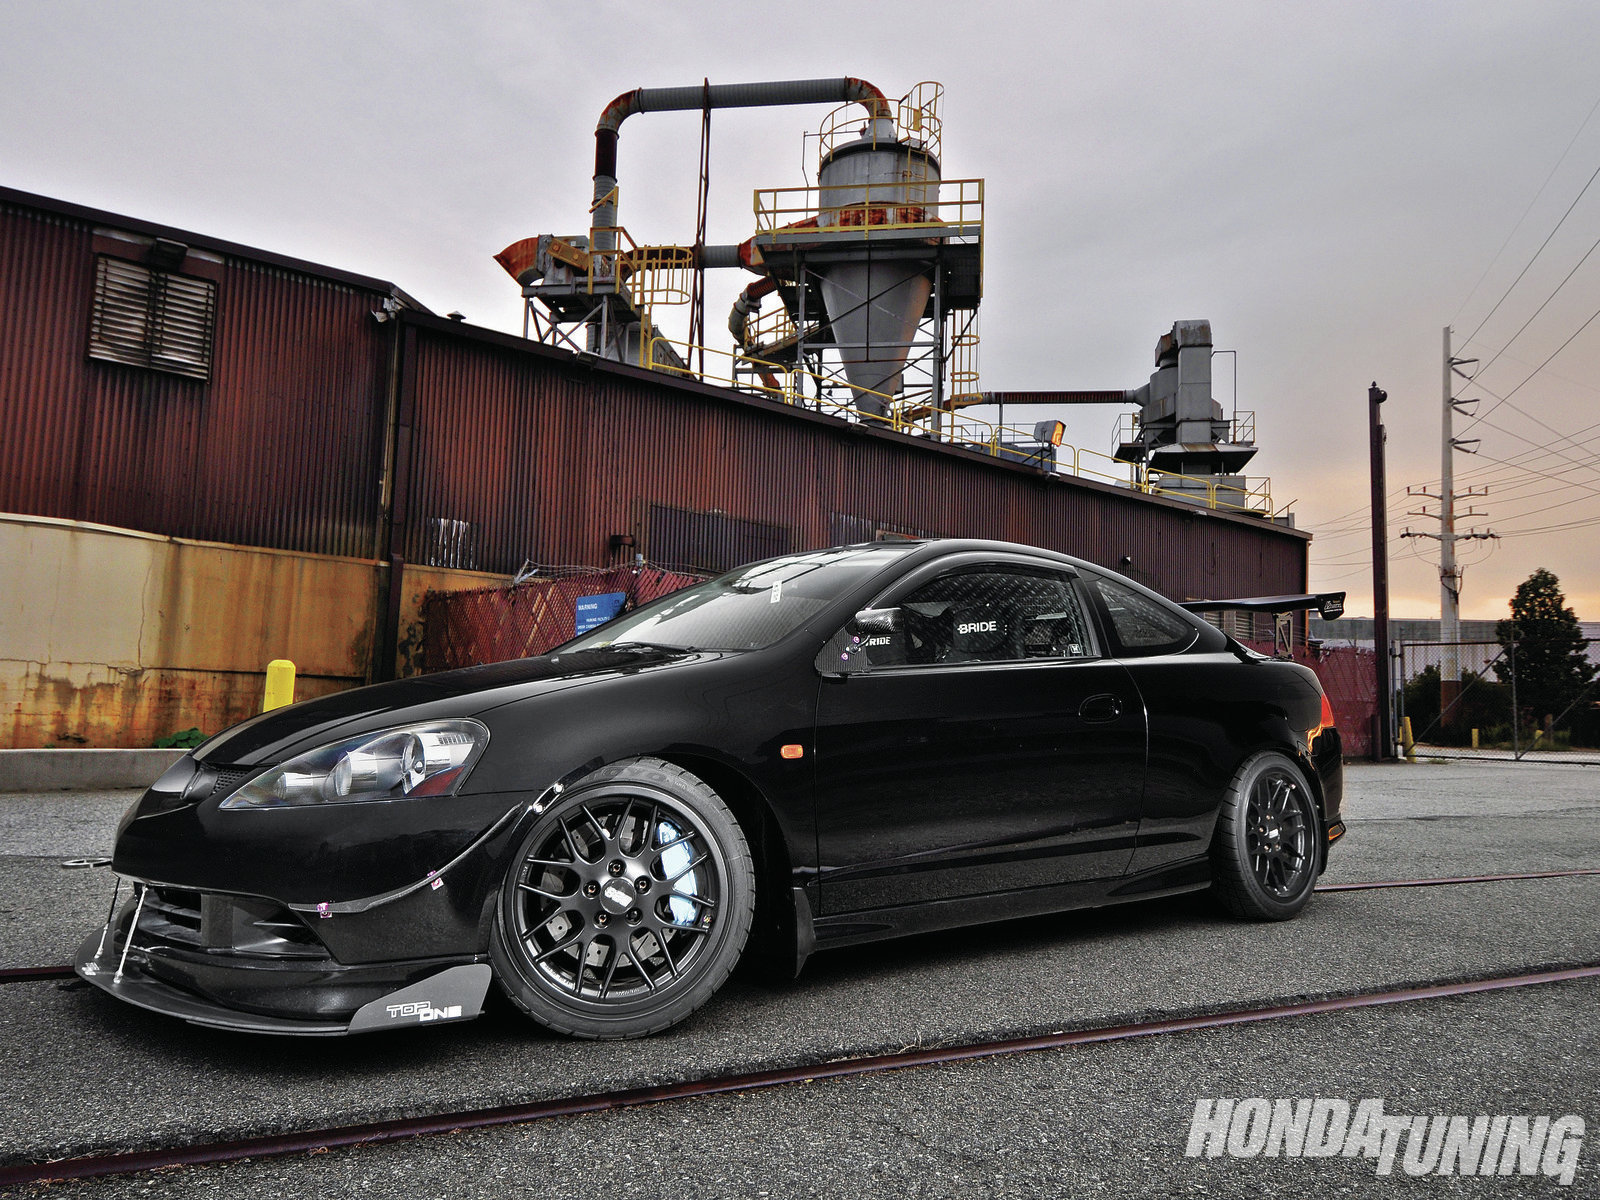 2006 Acura Rsx Type S >> 2006 Acura Rsx Type S Patience Personified Honda Tuning